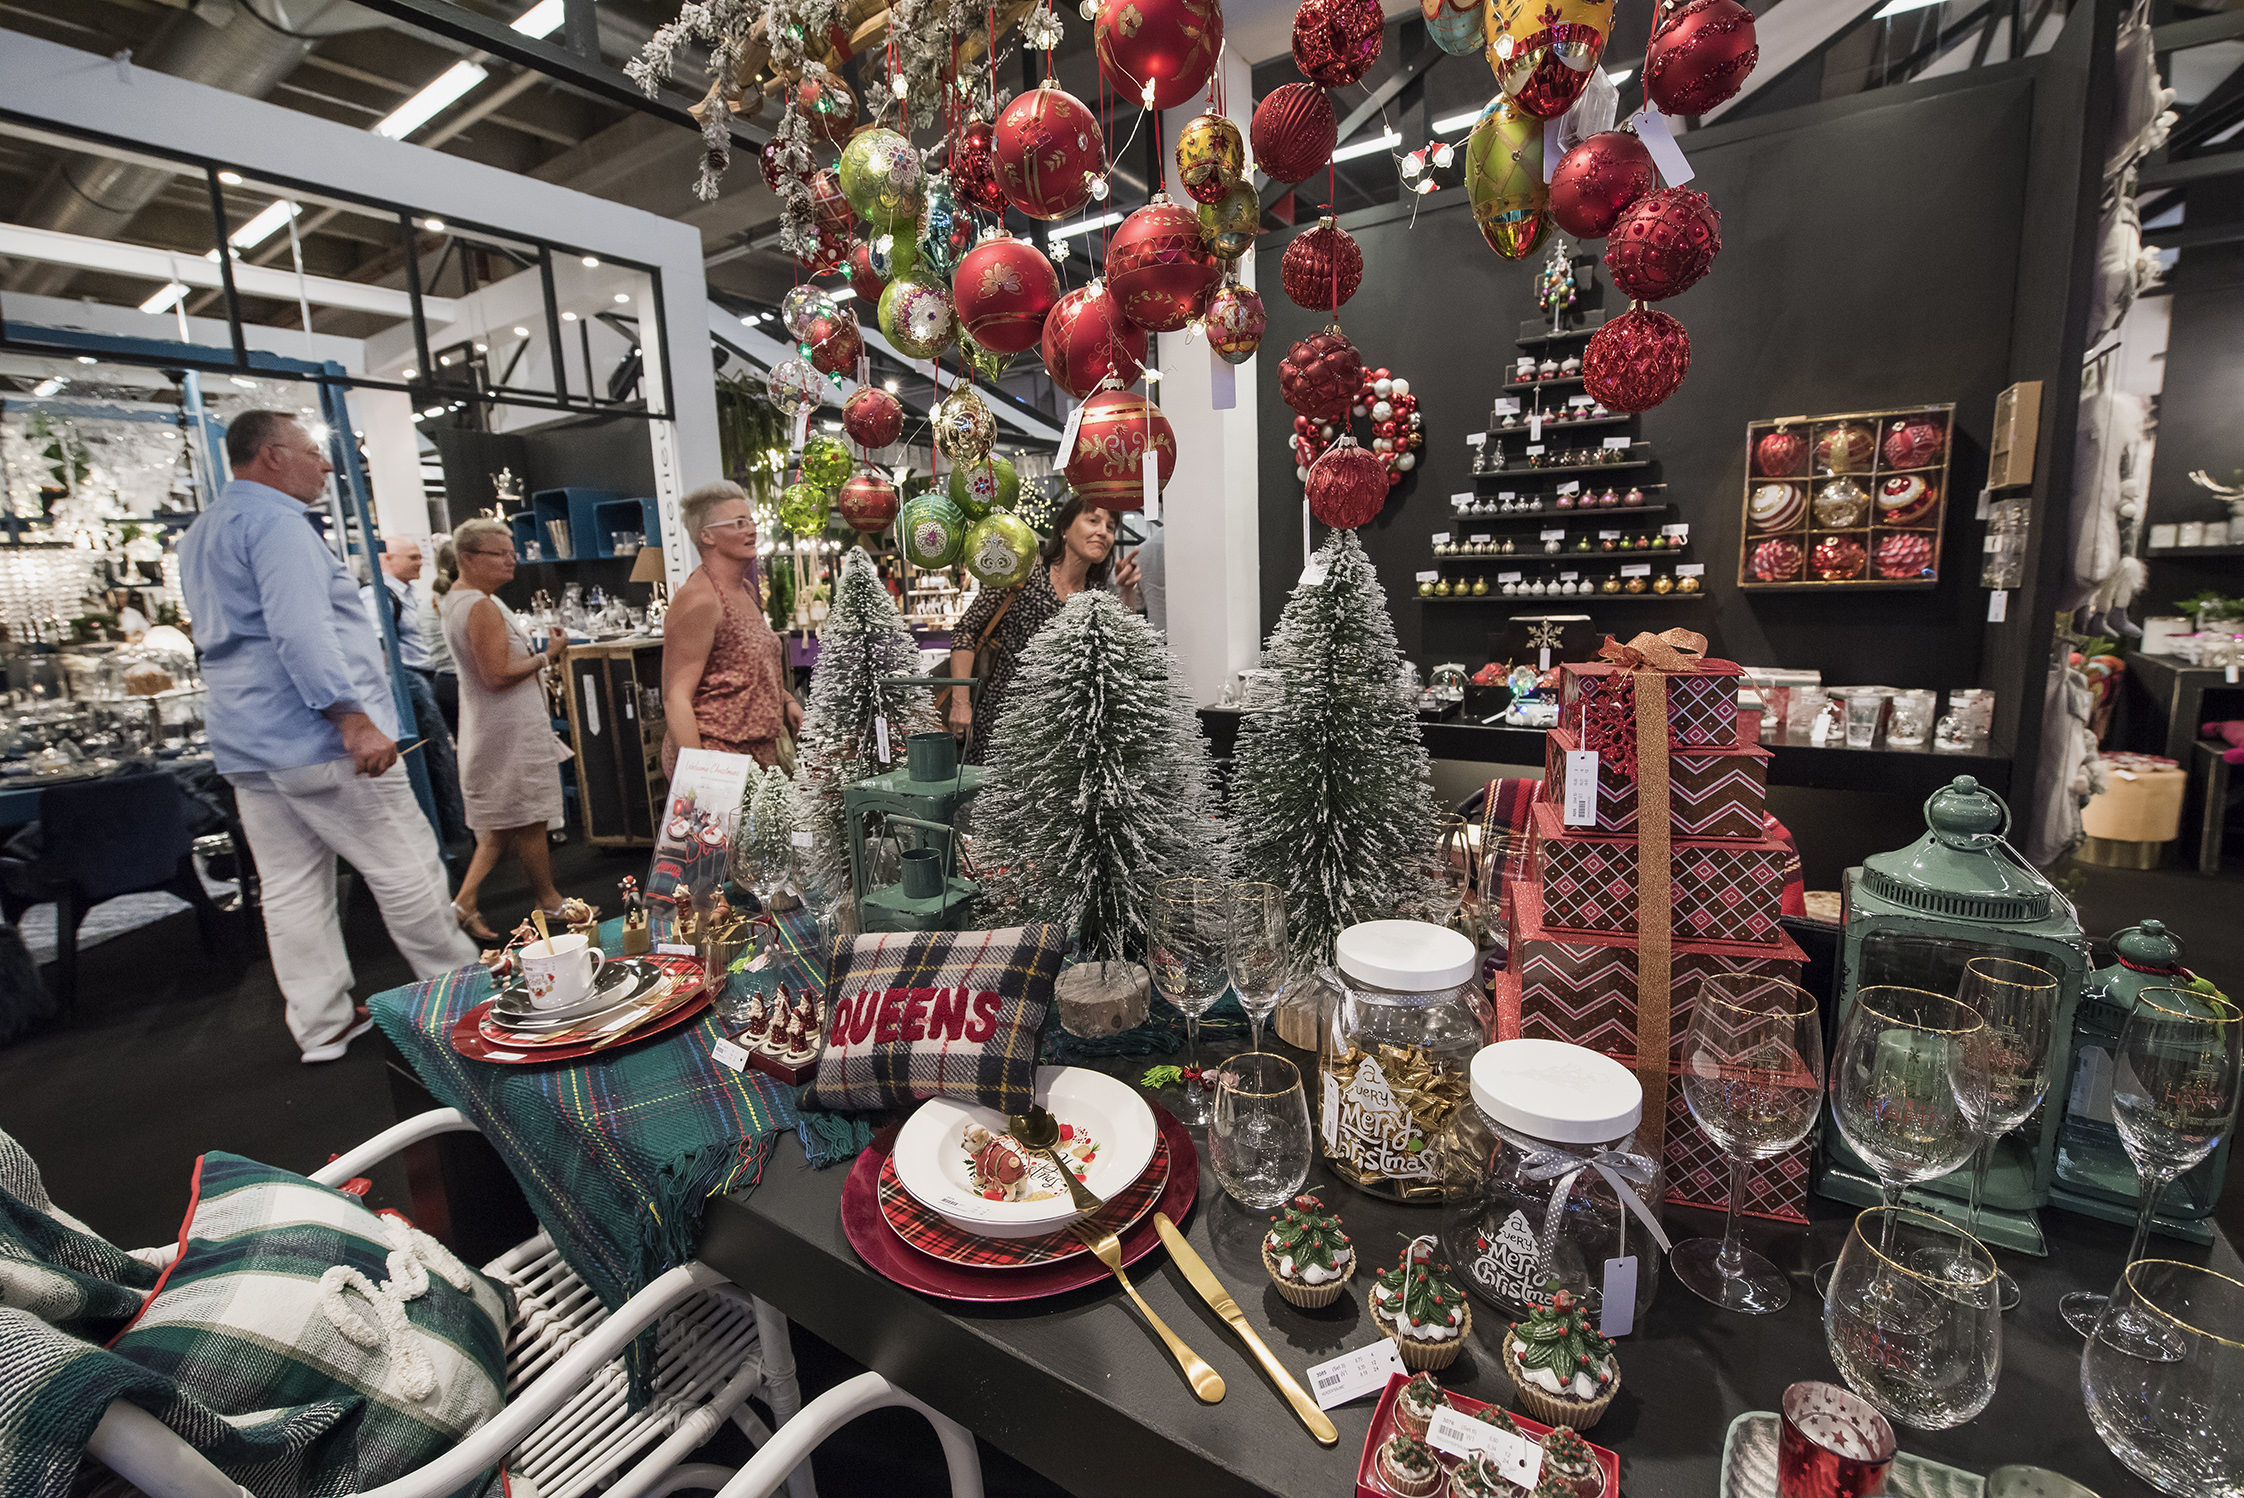 Home accessories, decorations and gifts for the entire year are shown at the Moment Market.